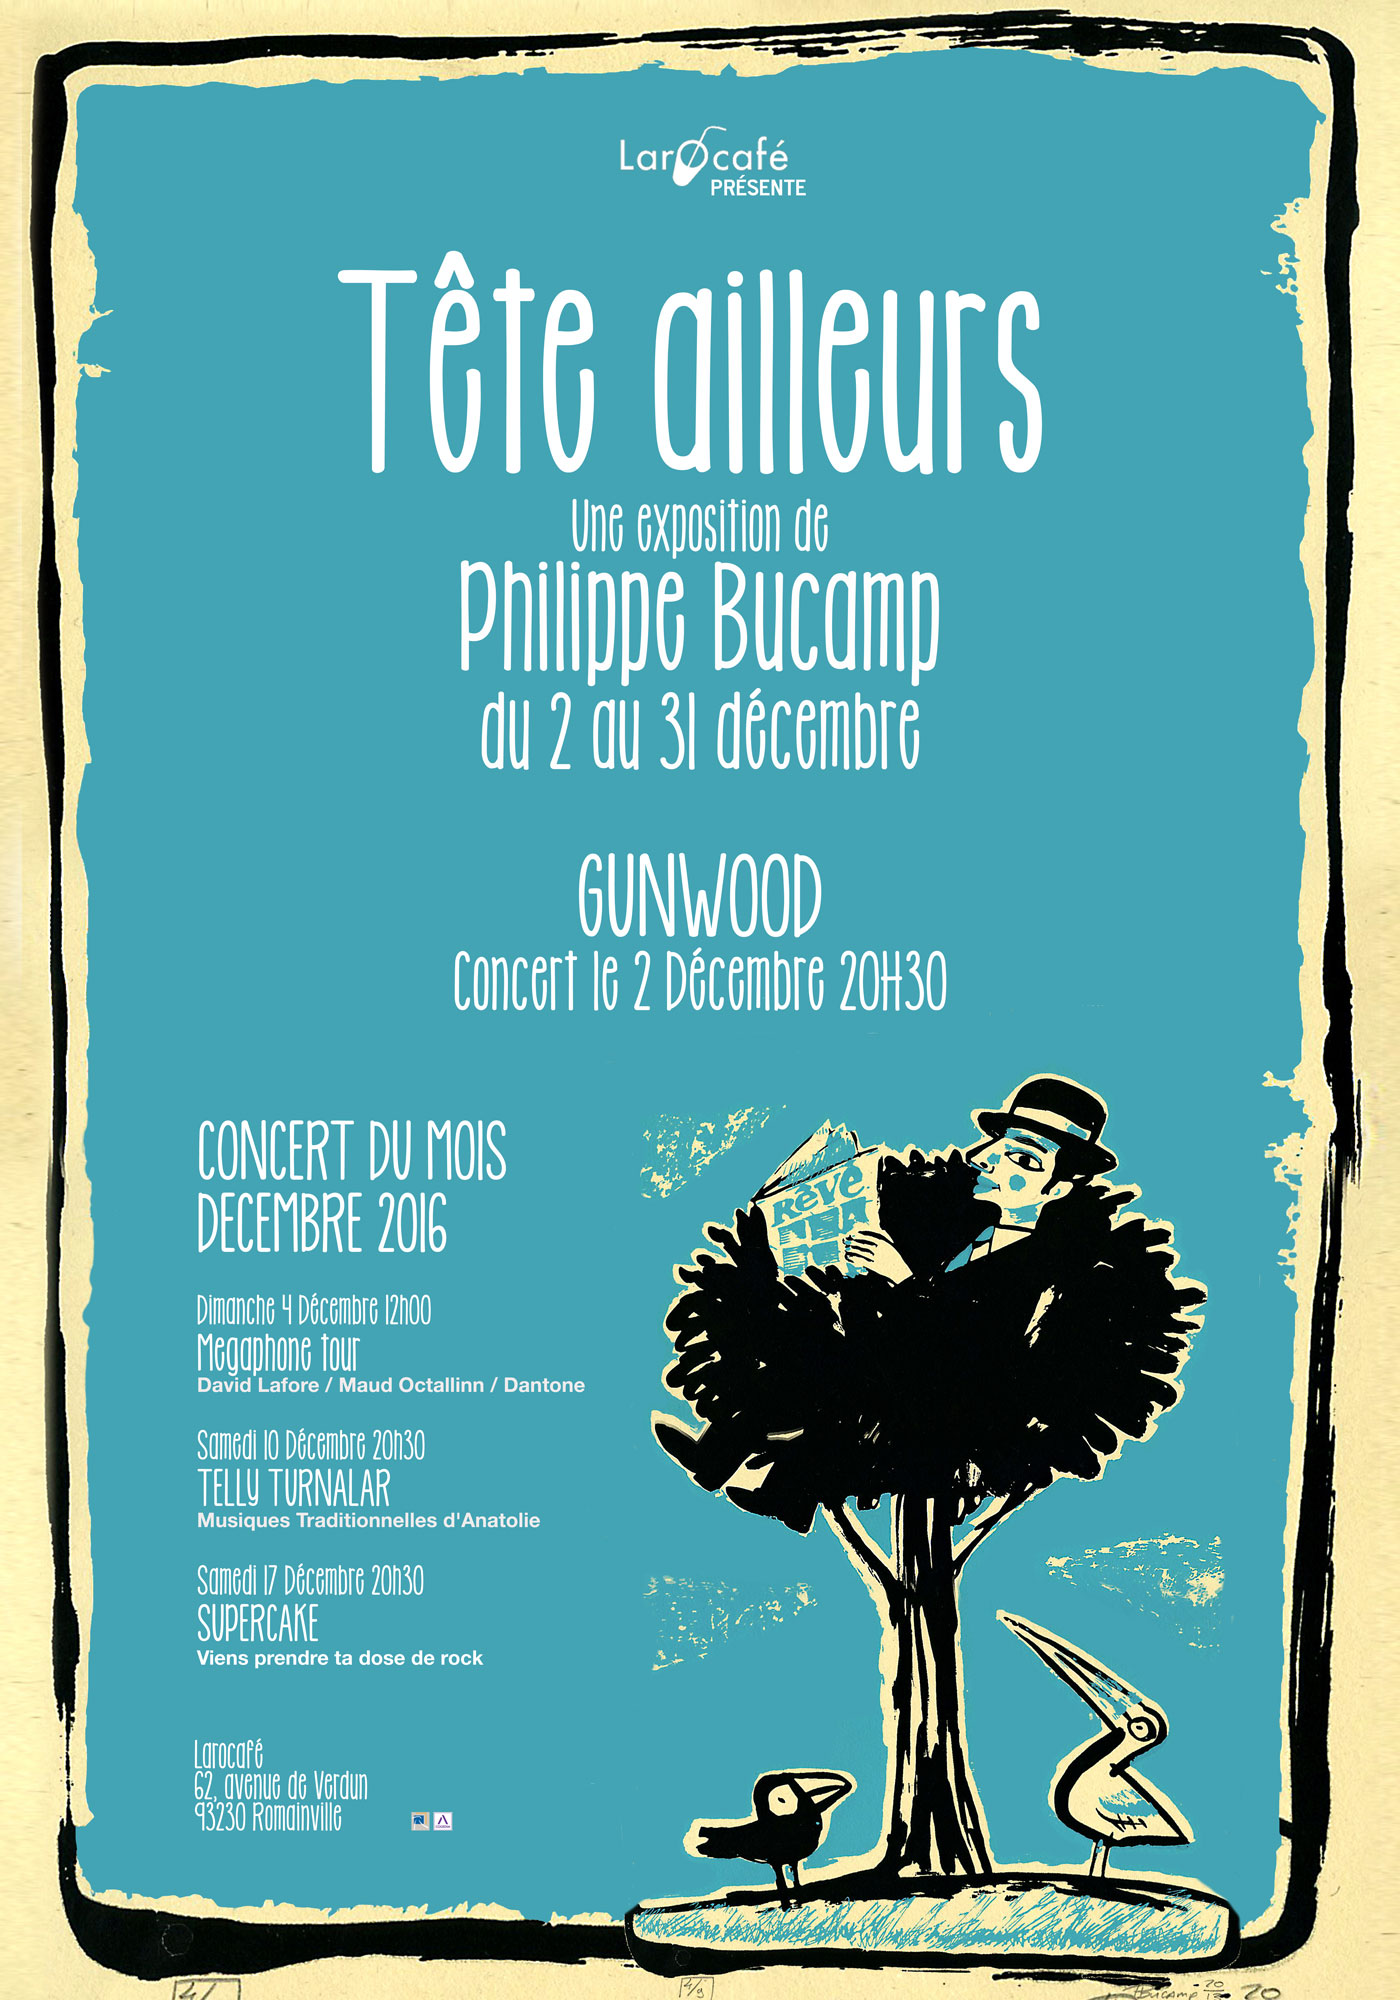 expo-larocafe-philippe-bucamp